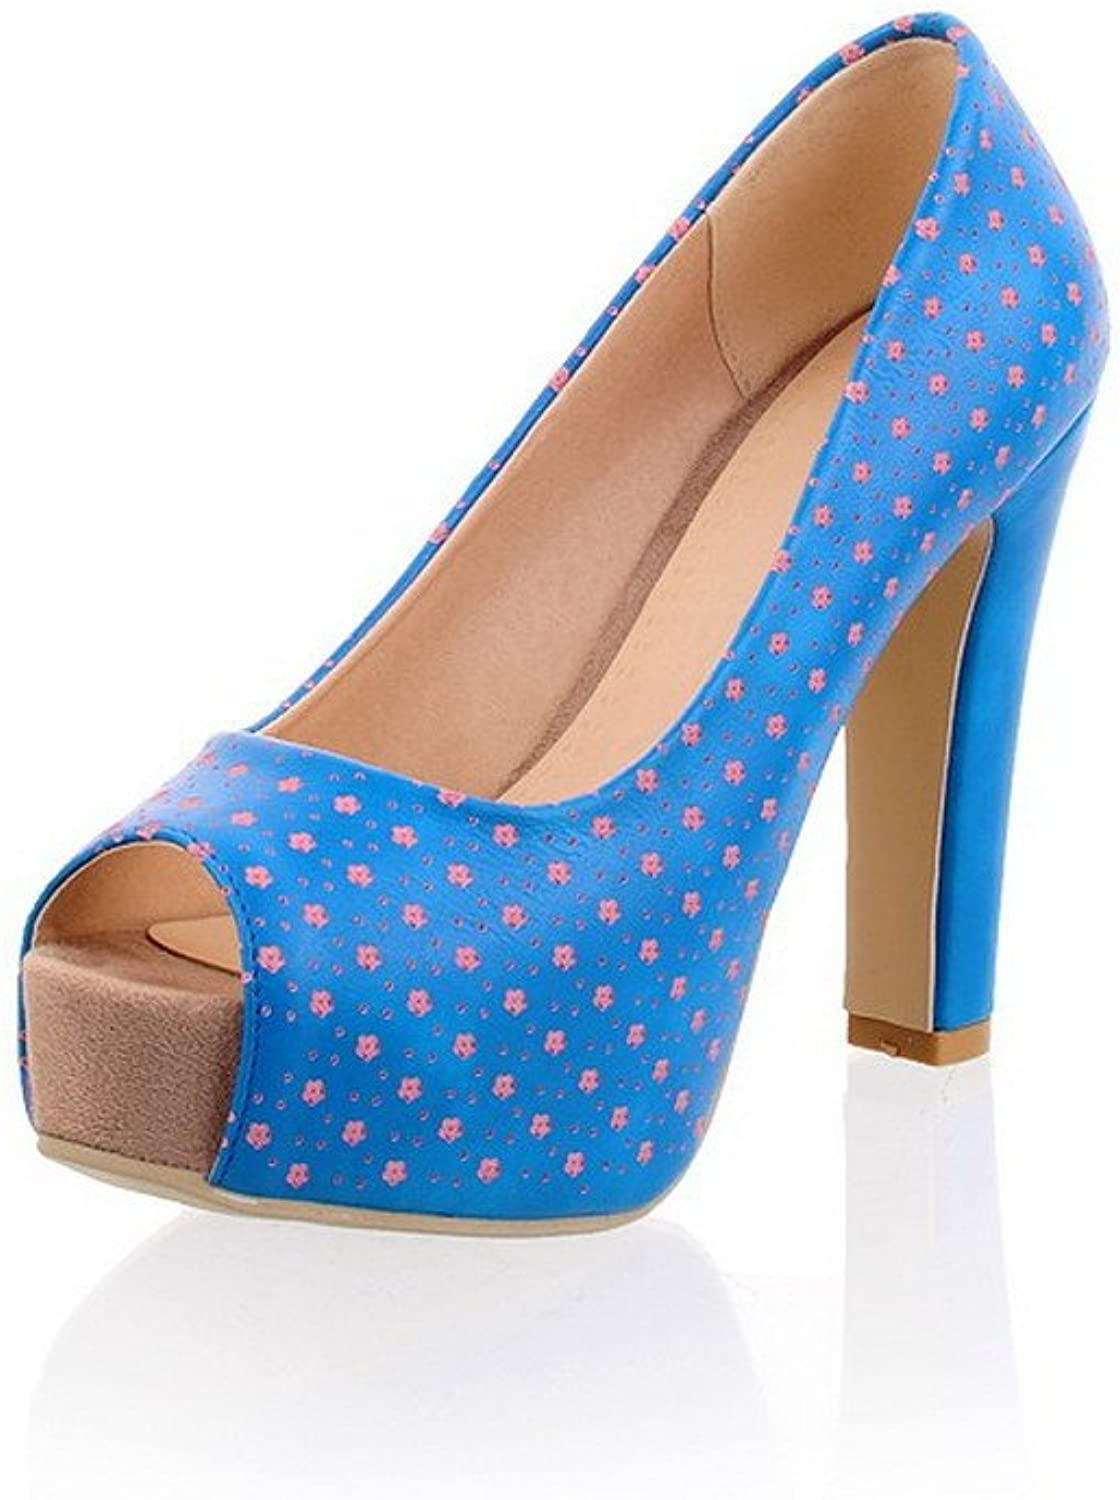 AmoonyFashion Women's Assorted color Soft Leather High-Heels Pull-on Peep-Toe Sandals